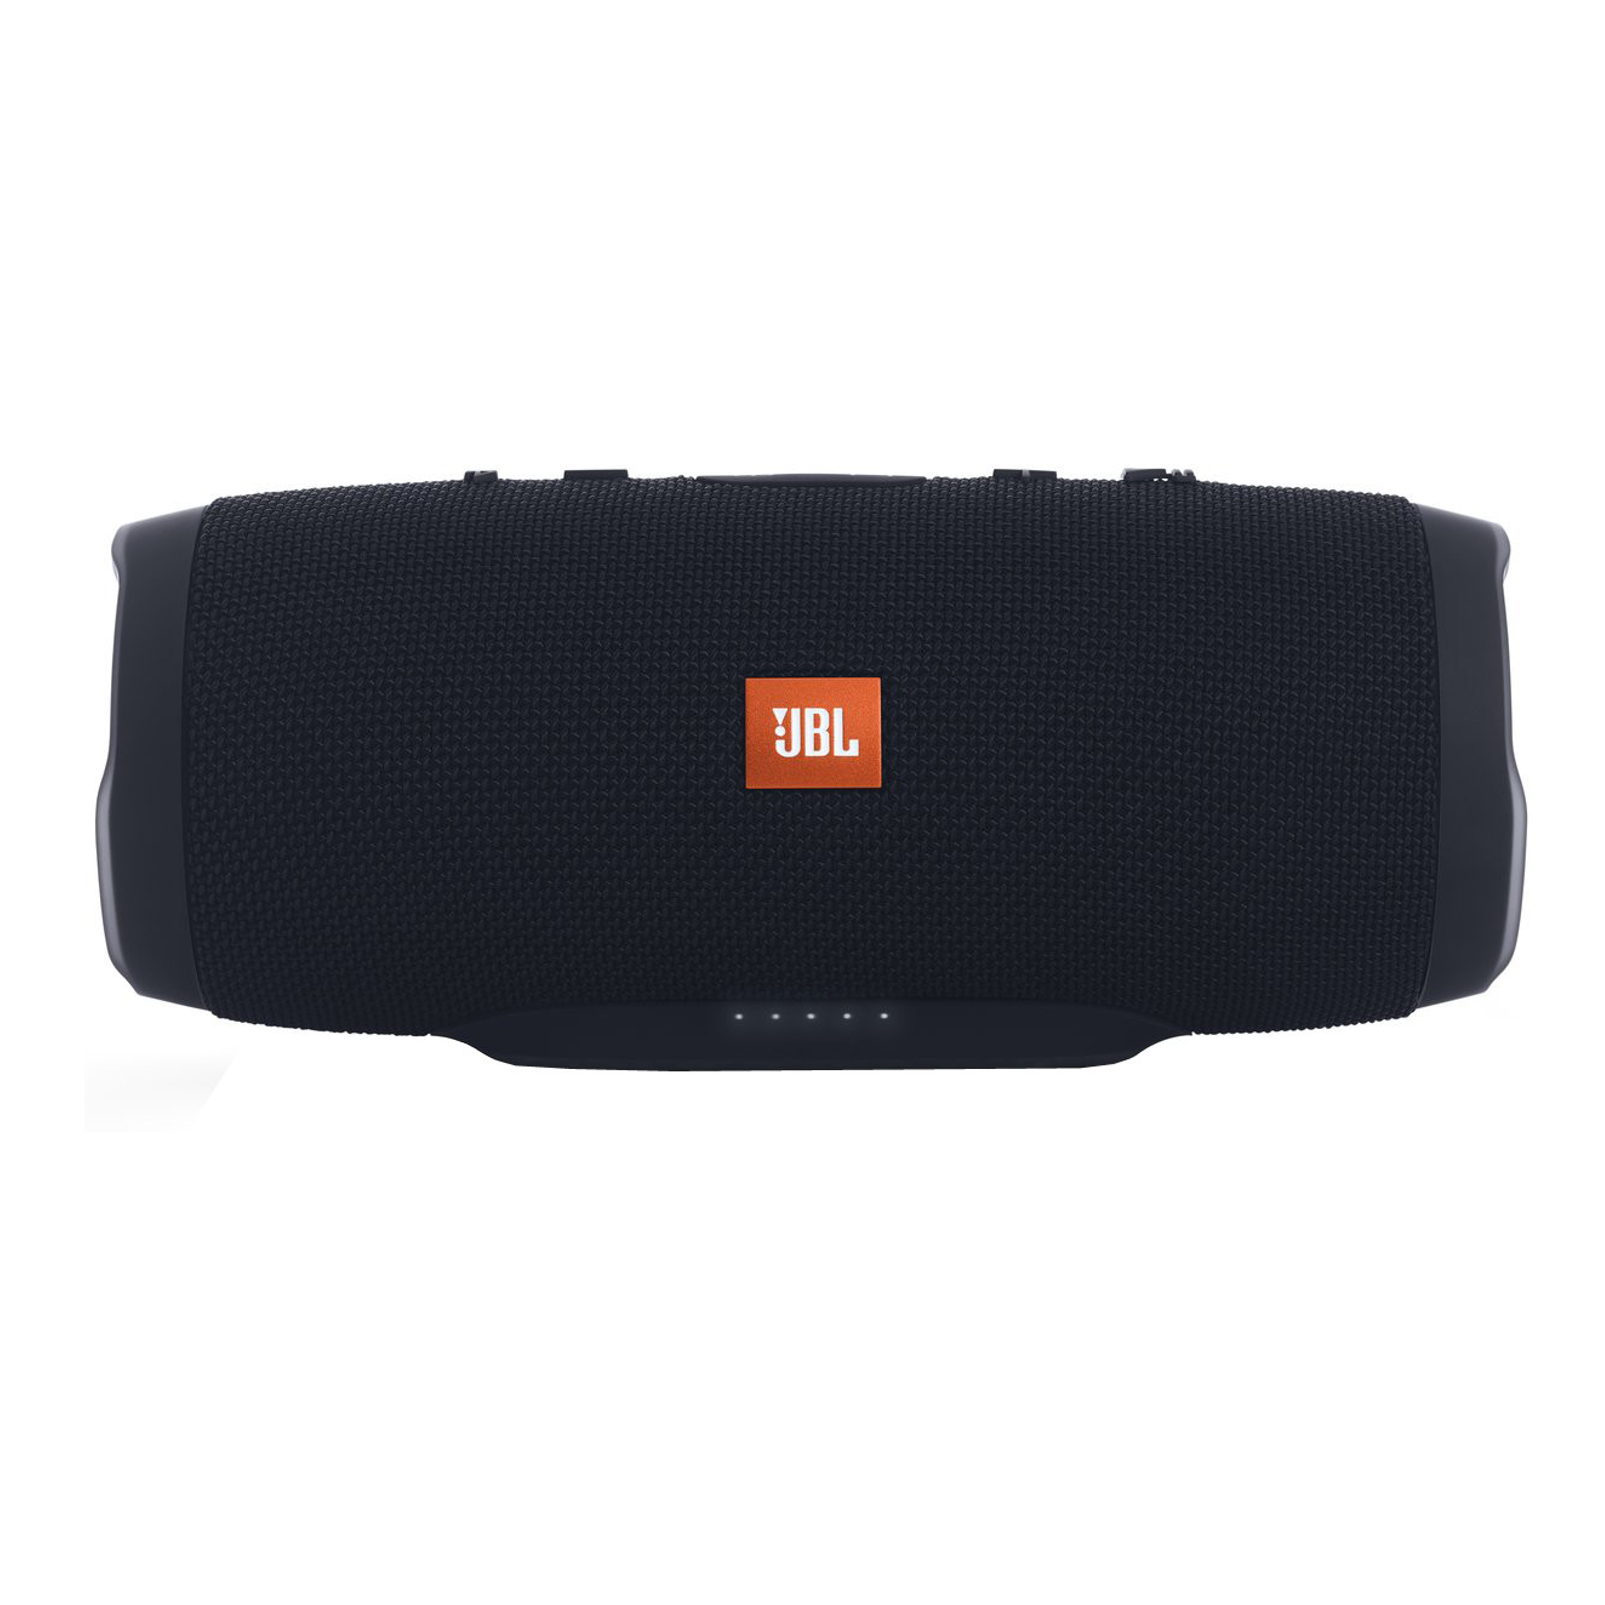 Image of JBL Charge 3 Stealth Edition Black Bluetooth Högtalare JBL Bluetooth Högtalare 6925281956171 JBLCHARGE3SEBLKEU_A